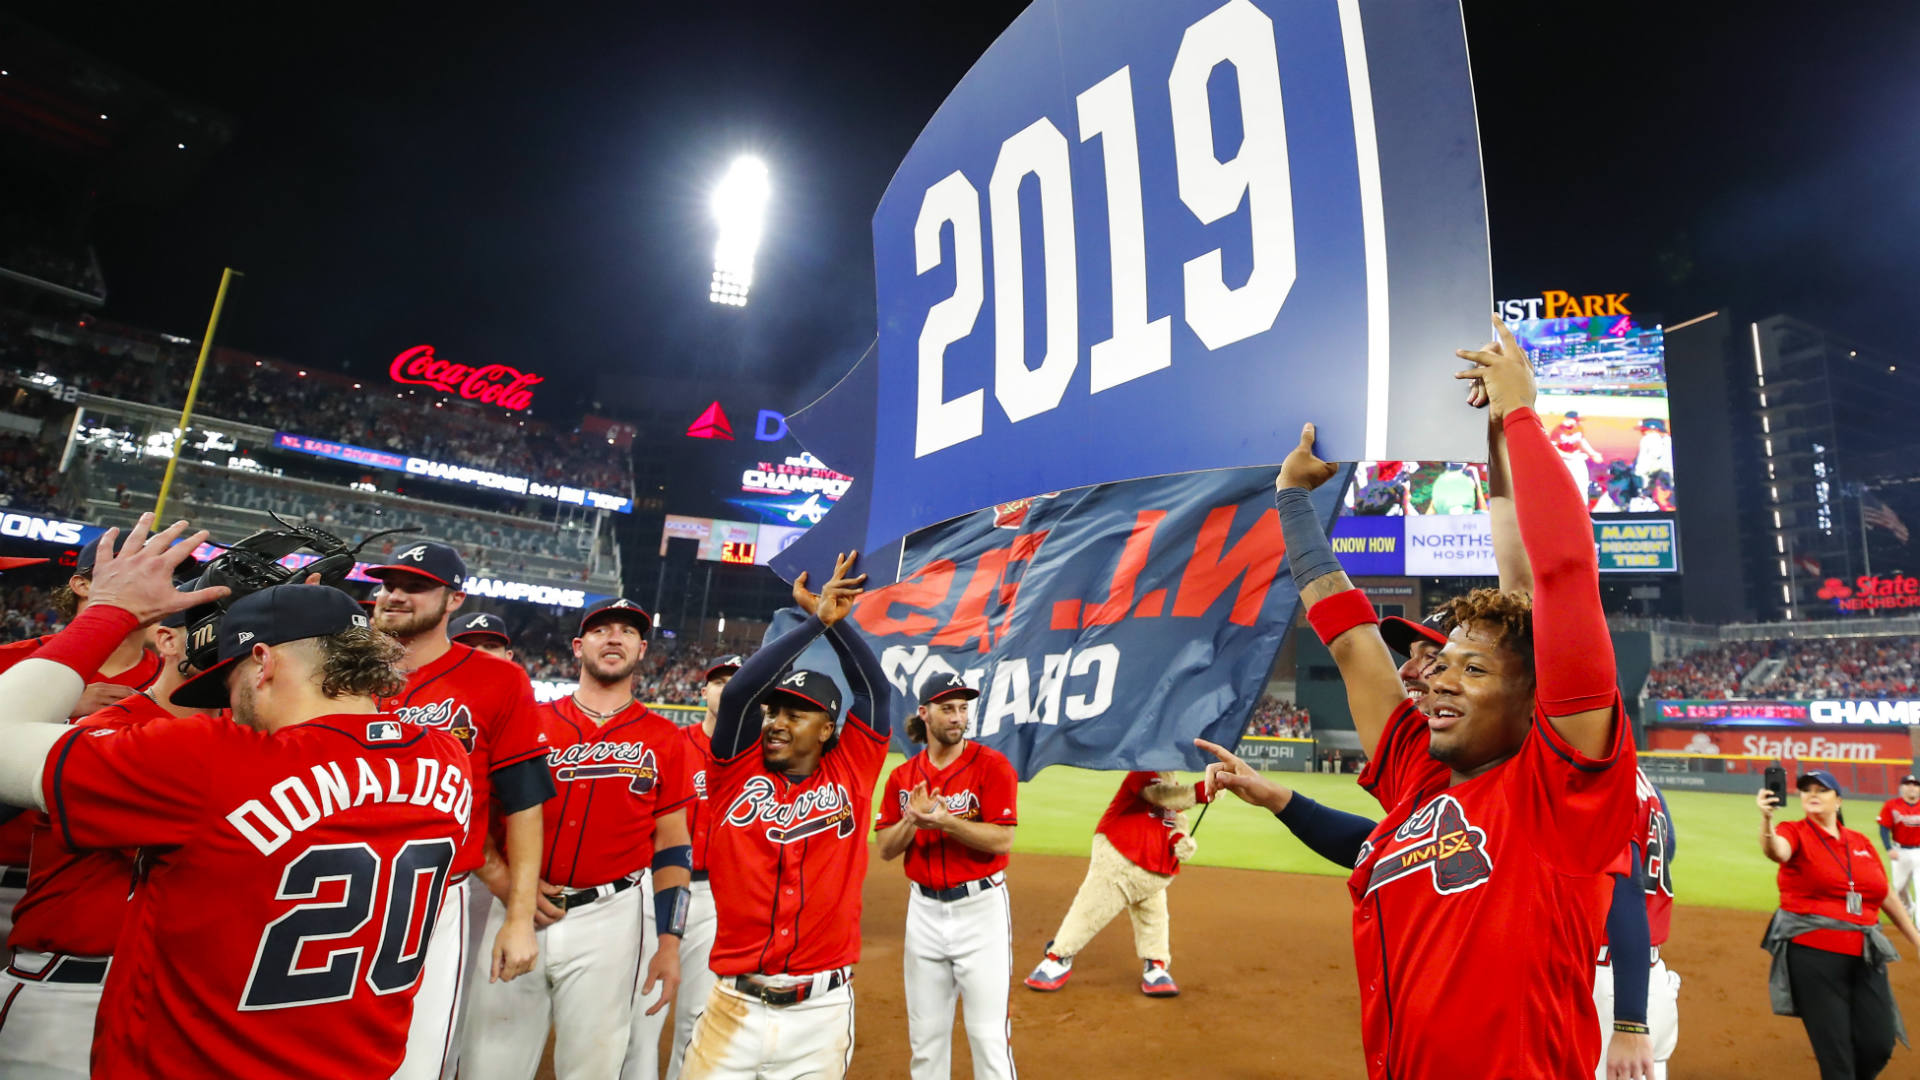 These Braves are brimming with confidence and not concerned with past playoff failures